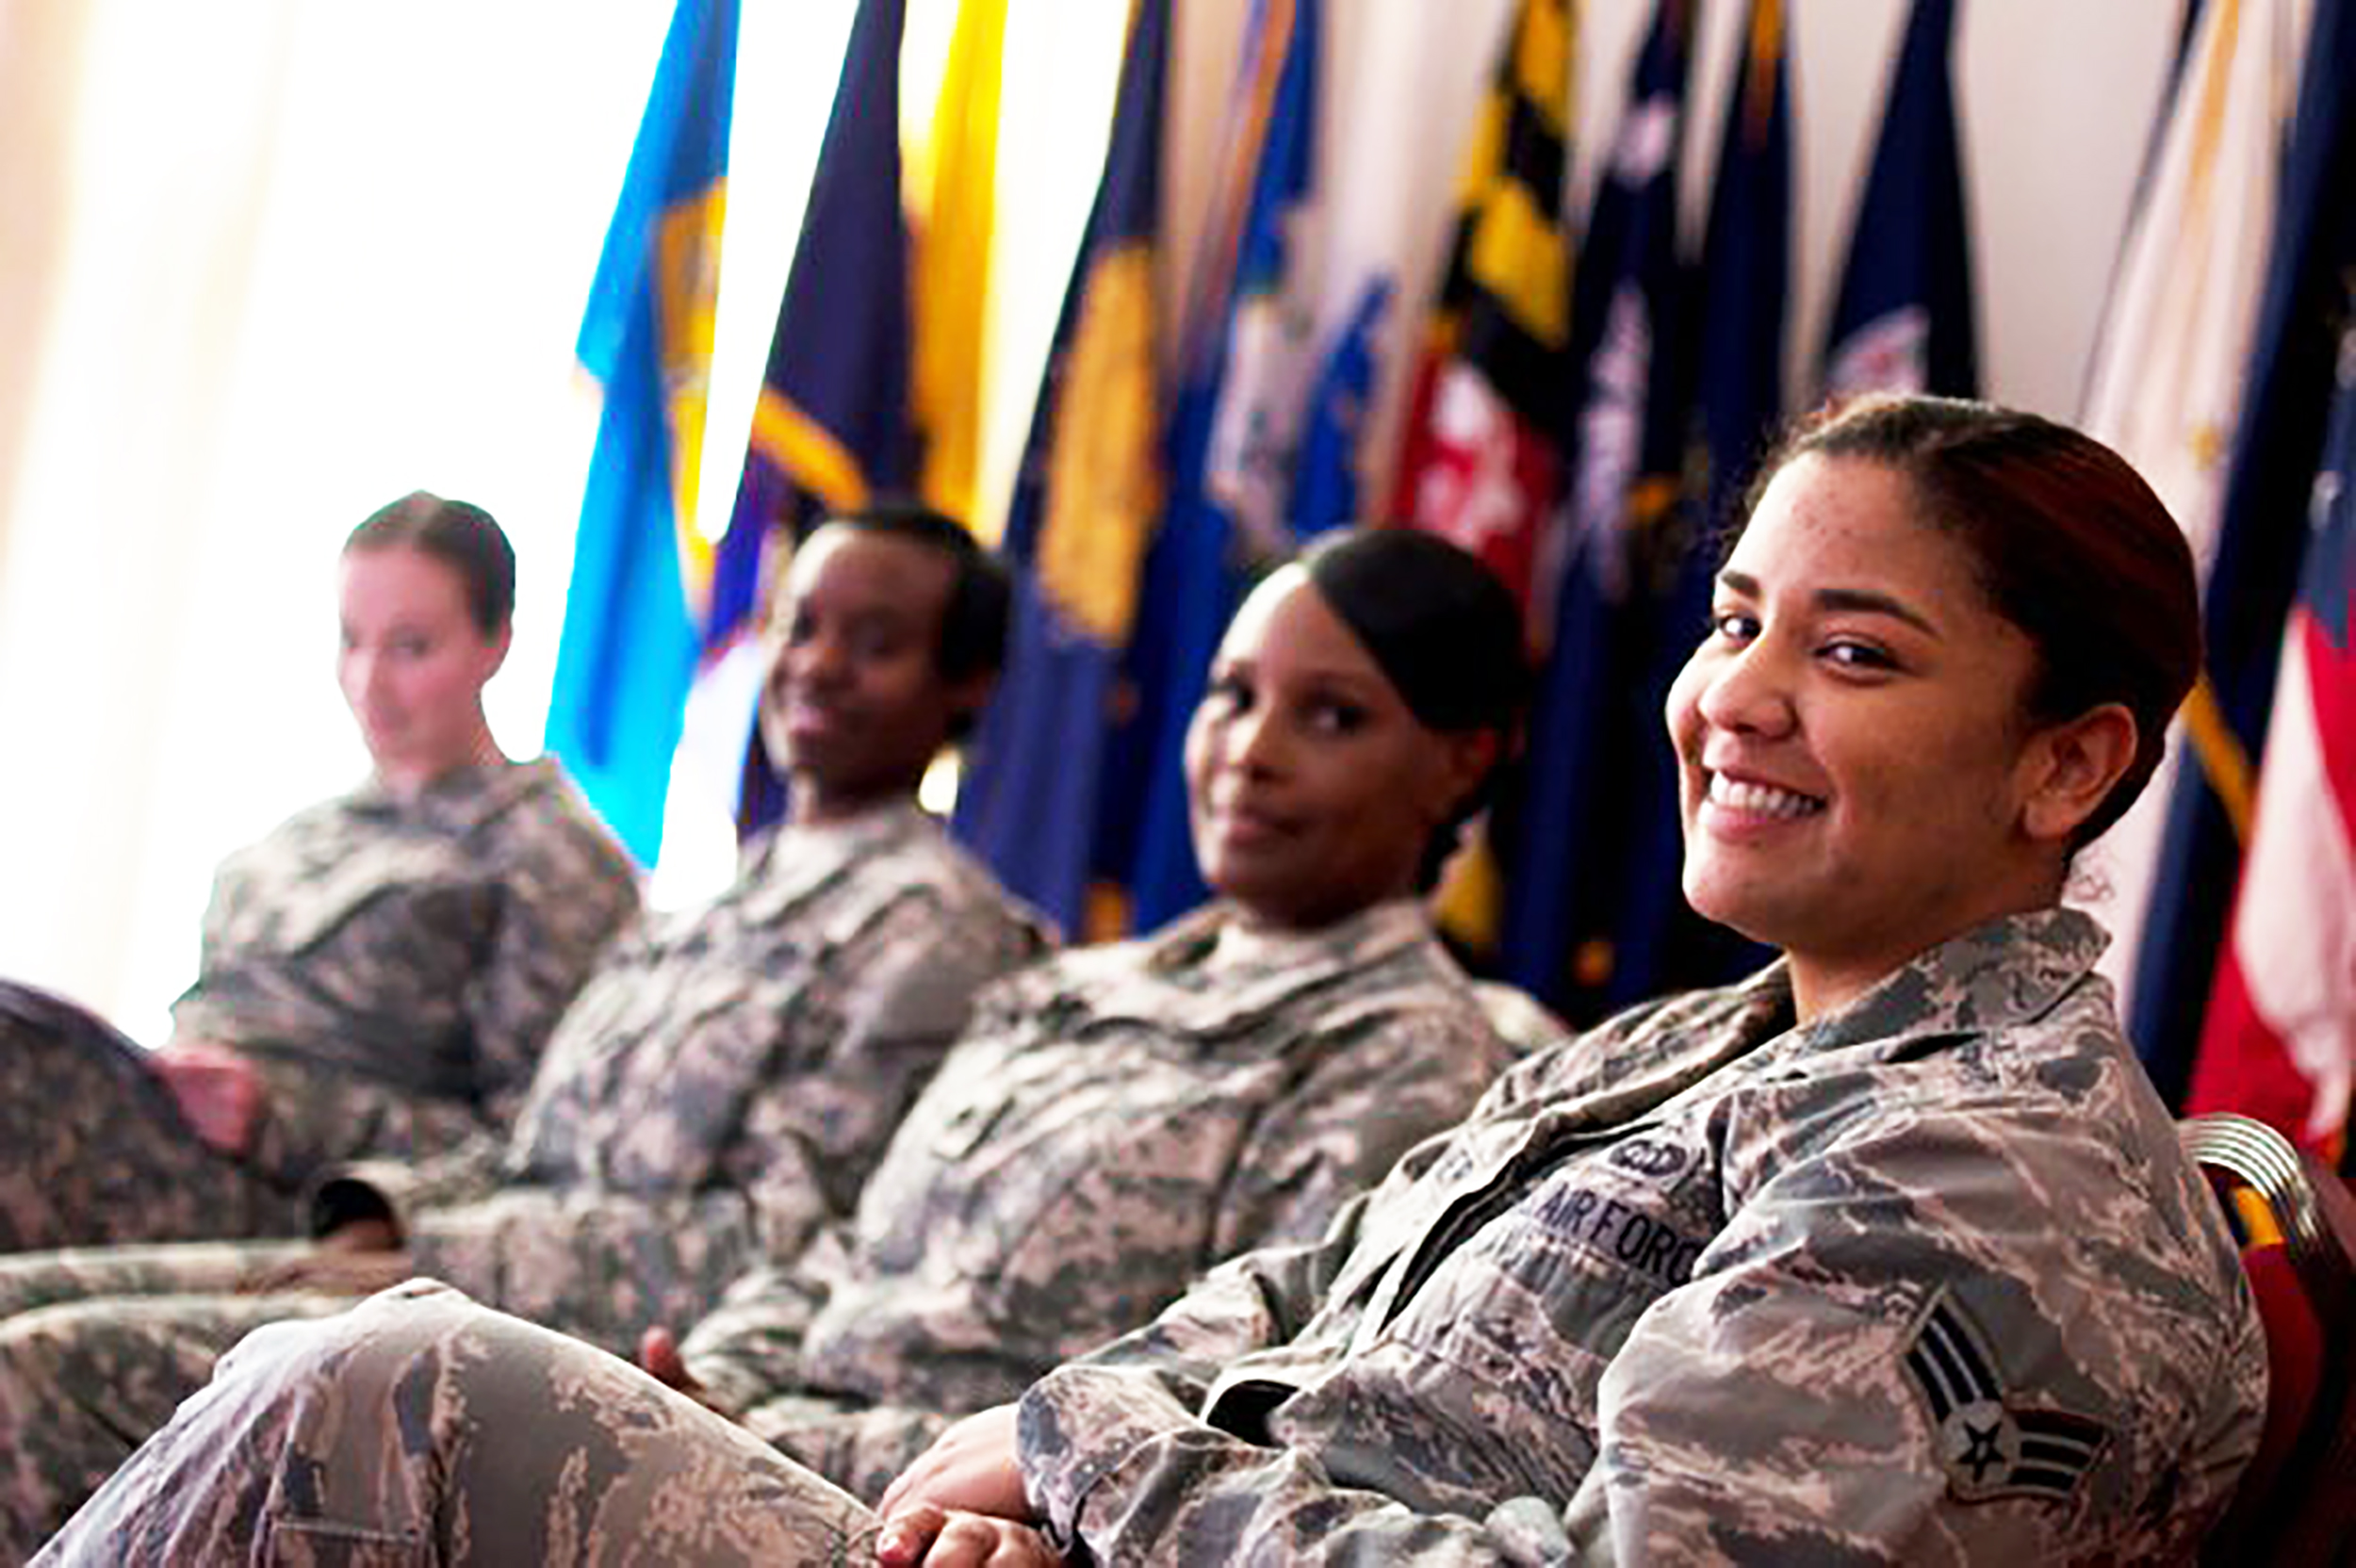 Women in the military (pictured above) have proven they are more than capable of serving in the armed forces. Therefore, the United States draft should extend to everyone, regardless of gender (United States Army/Creative commons).